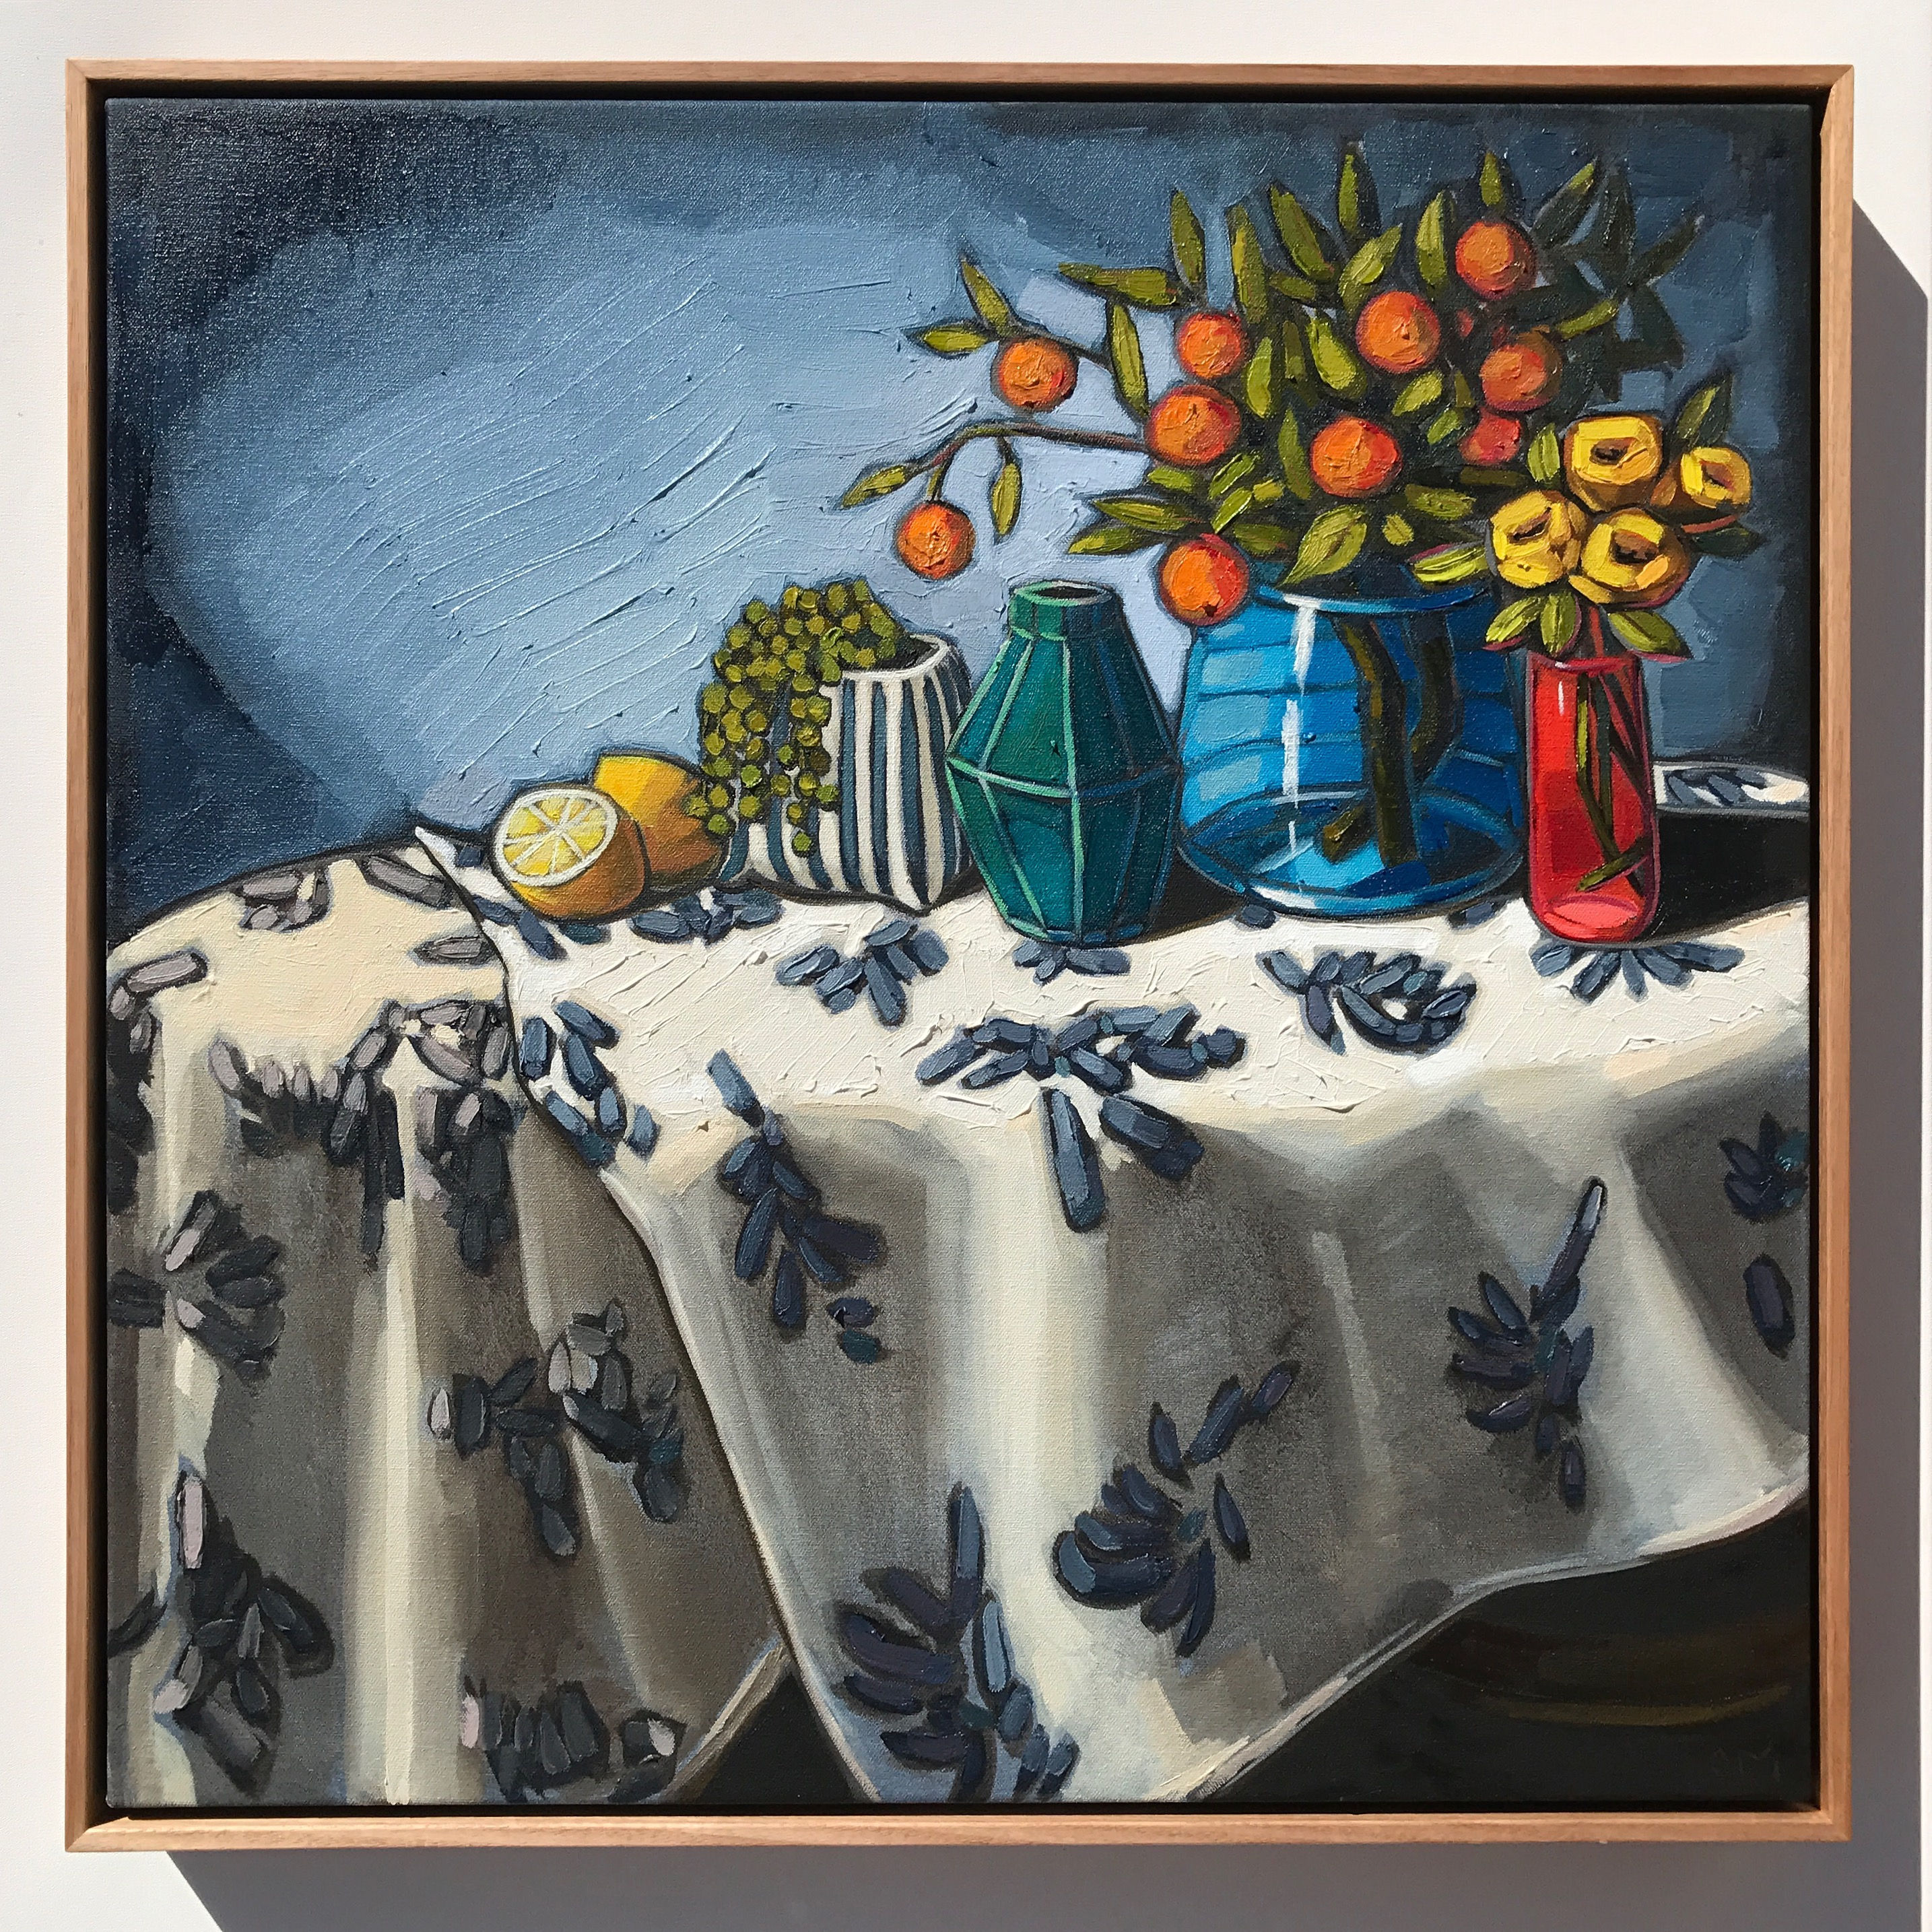 08_17 The Cloth Collection 'Cumquats & Blues' 63x63cm $2,495